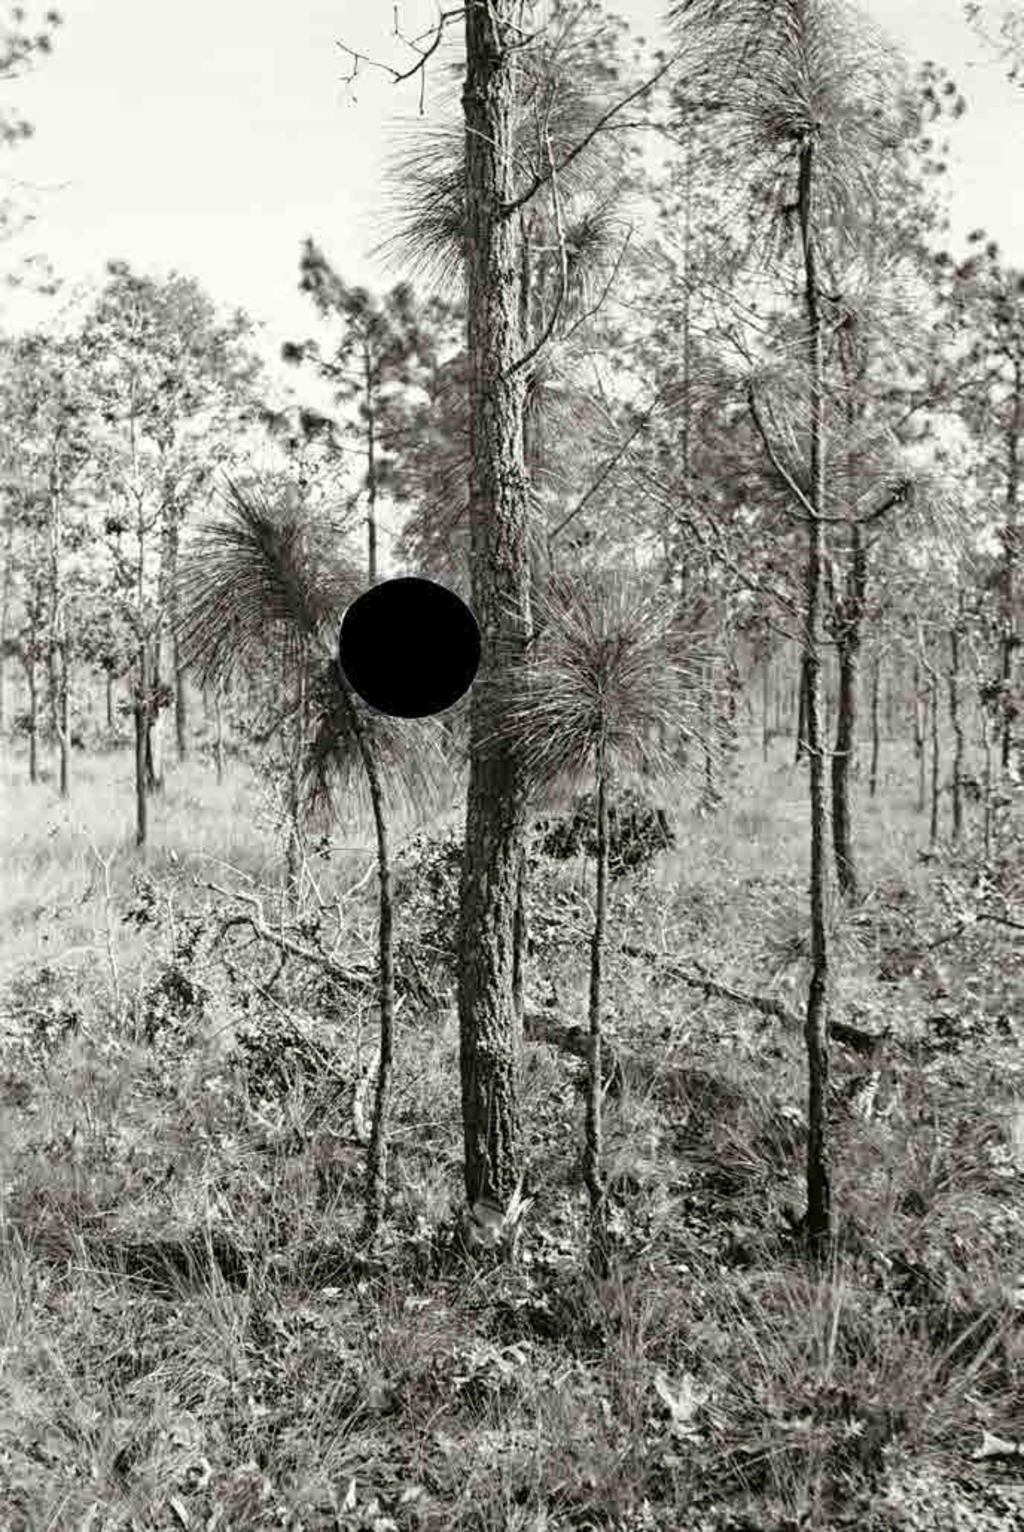 Blackjack oak, Withlacoochee land use project, Florida. 1937. Arthur Ruthstein.